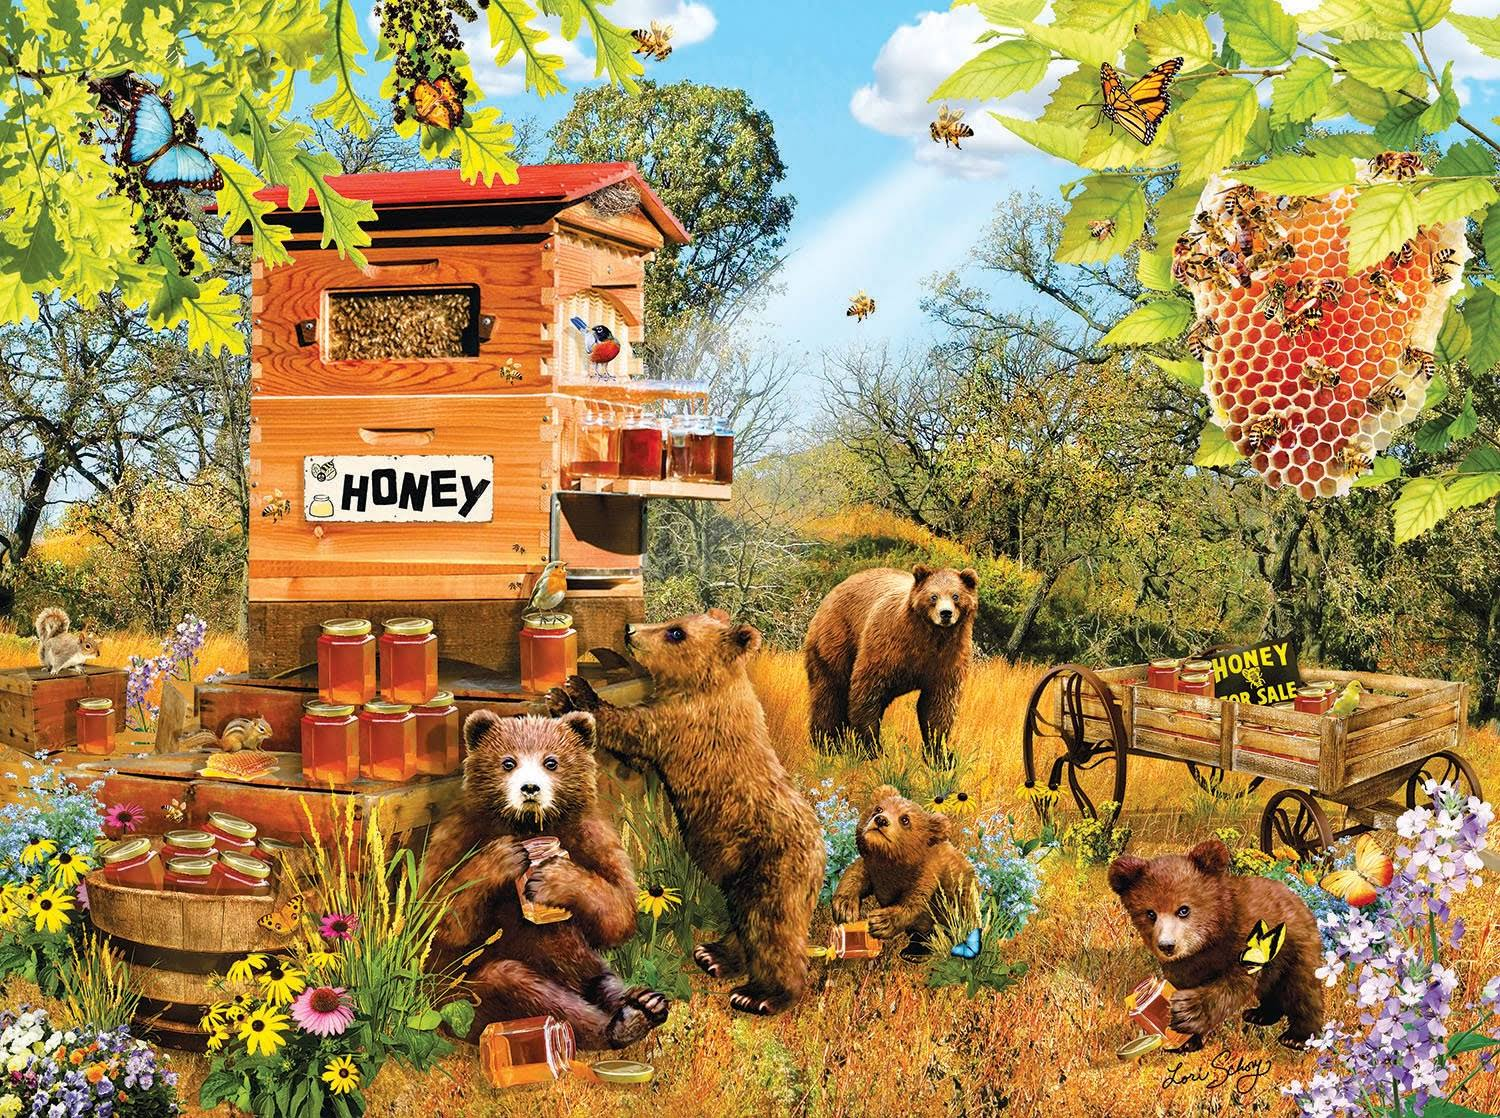 Bears and Bees - 1000pc Jigsaw Puzzle by Sunsout